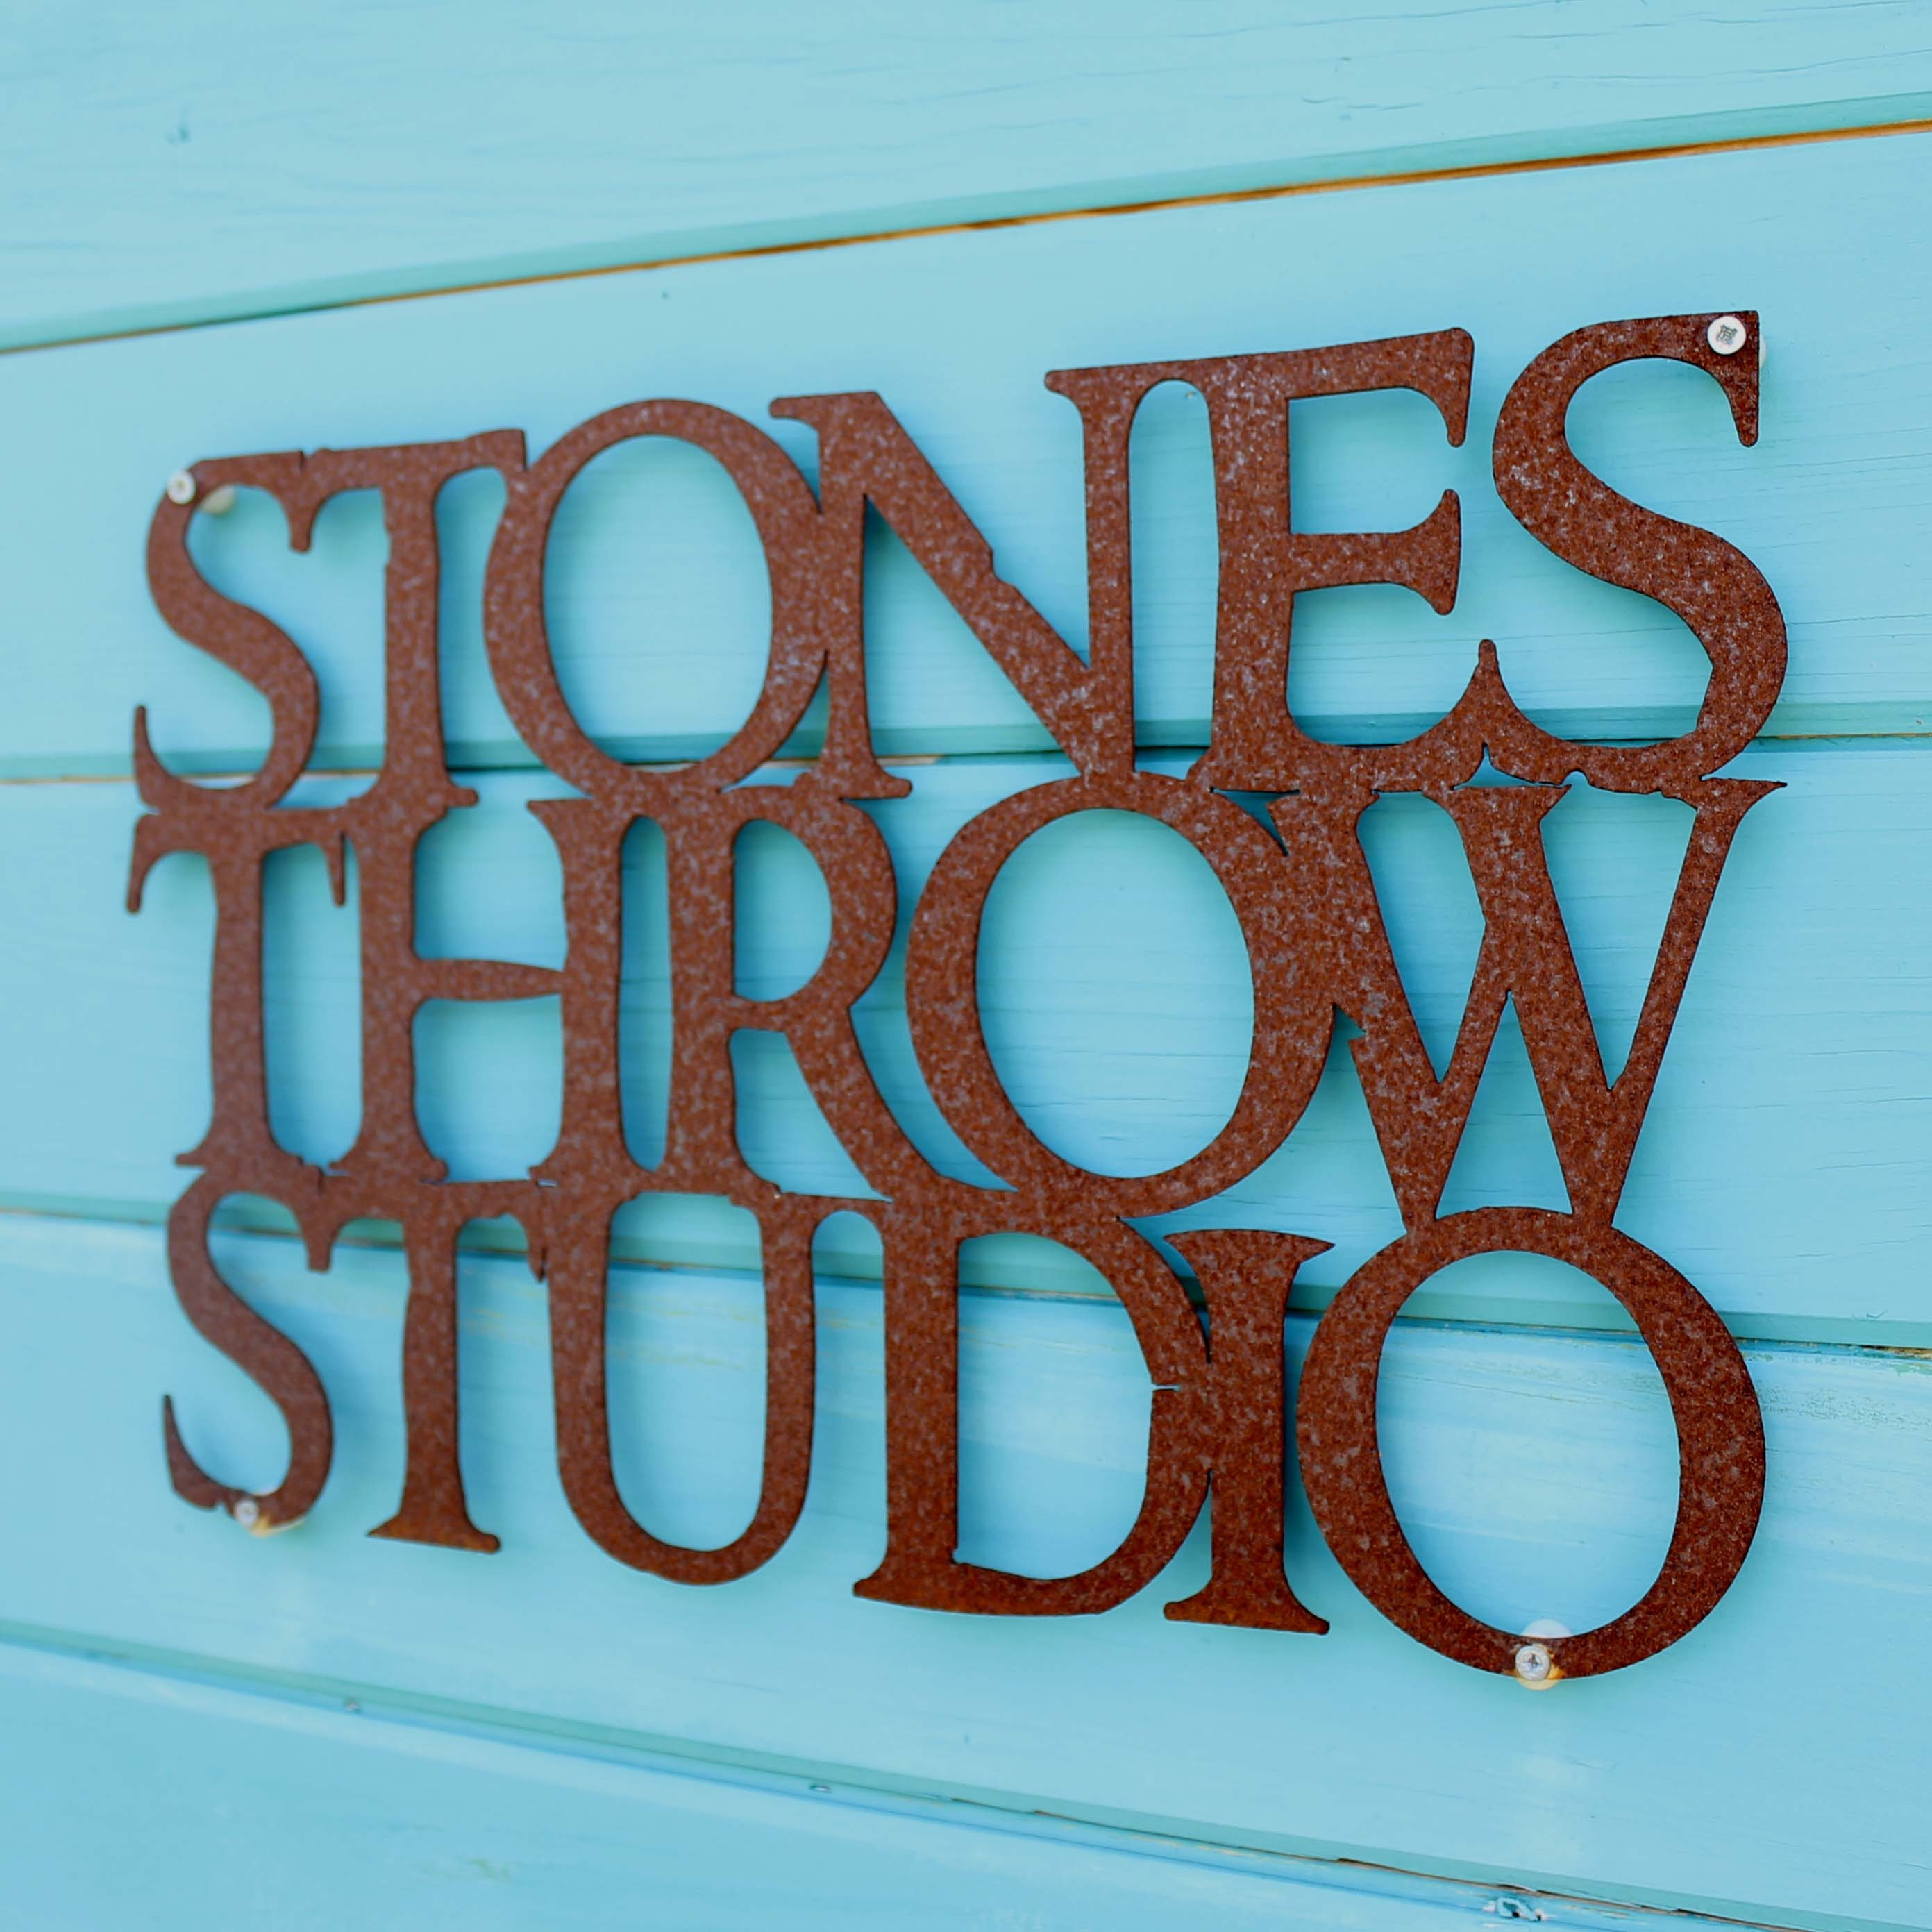 Image result for stones throw studio logo